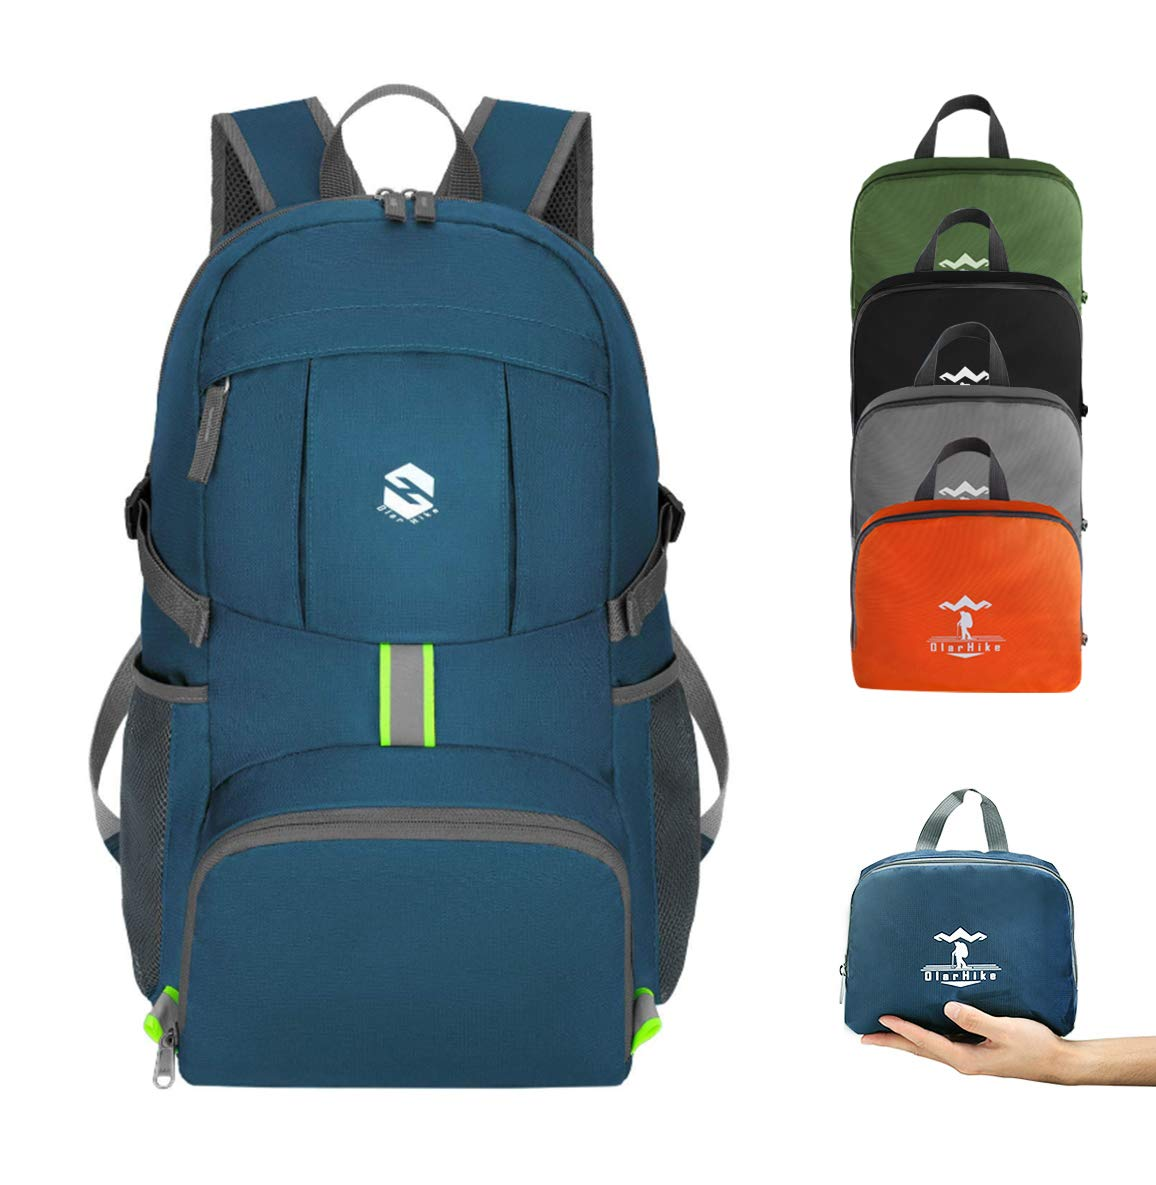 The OlarHike 35L Lightweight Hiking Backpack travel product recommended by Lydia on Lifney.